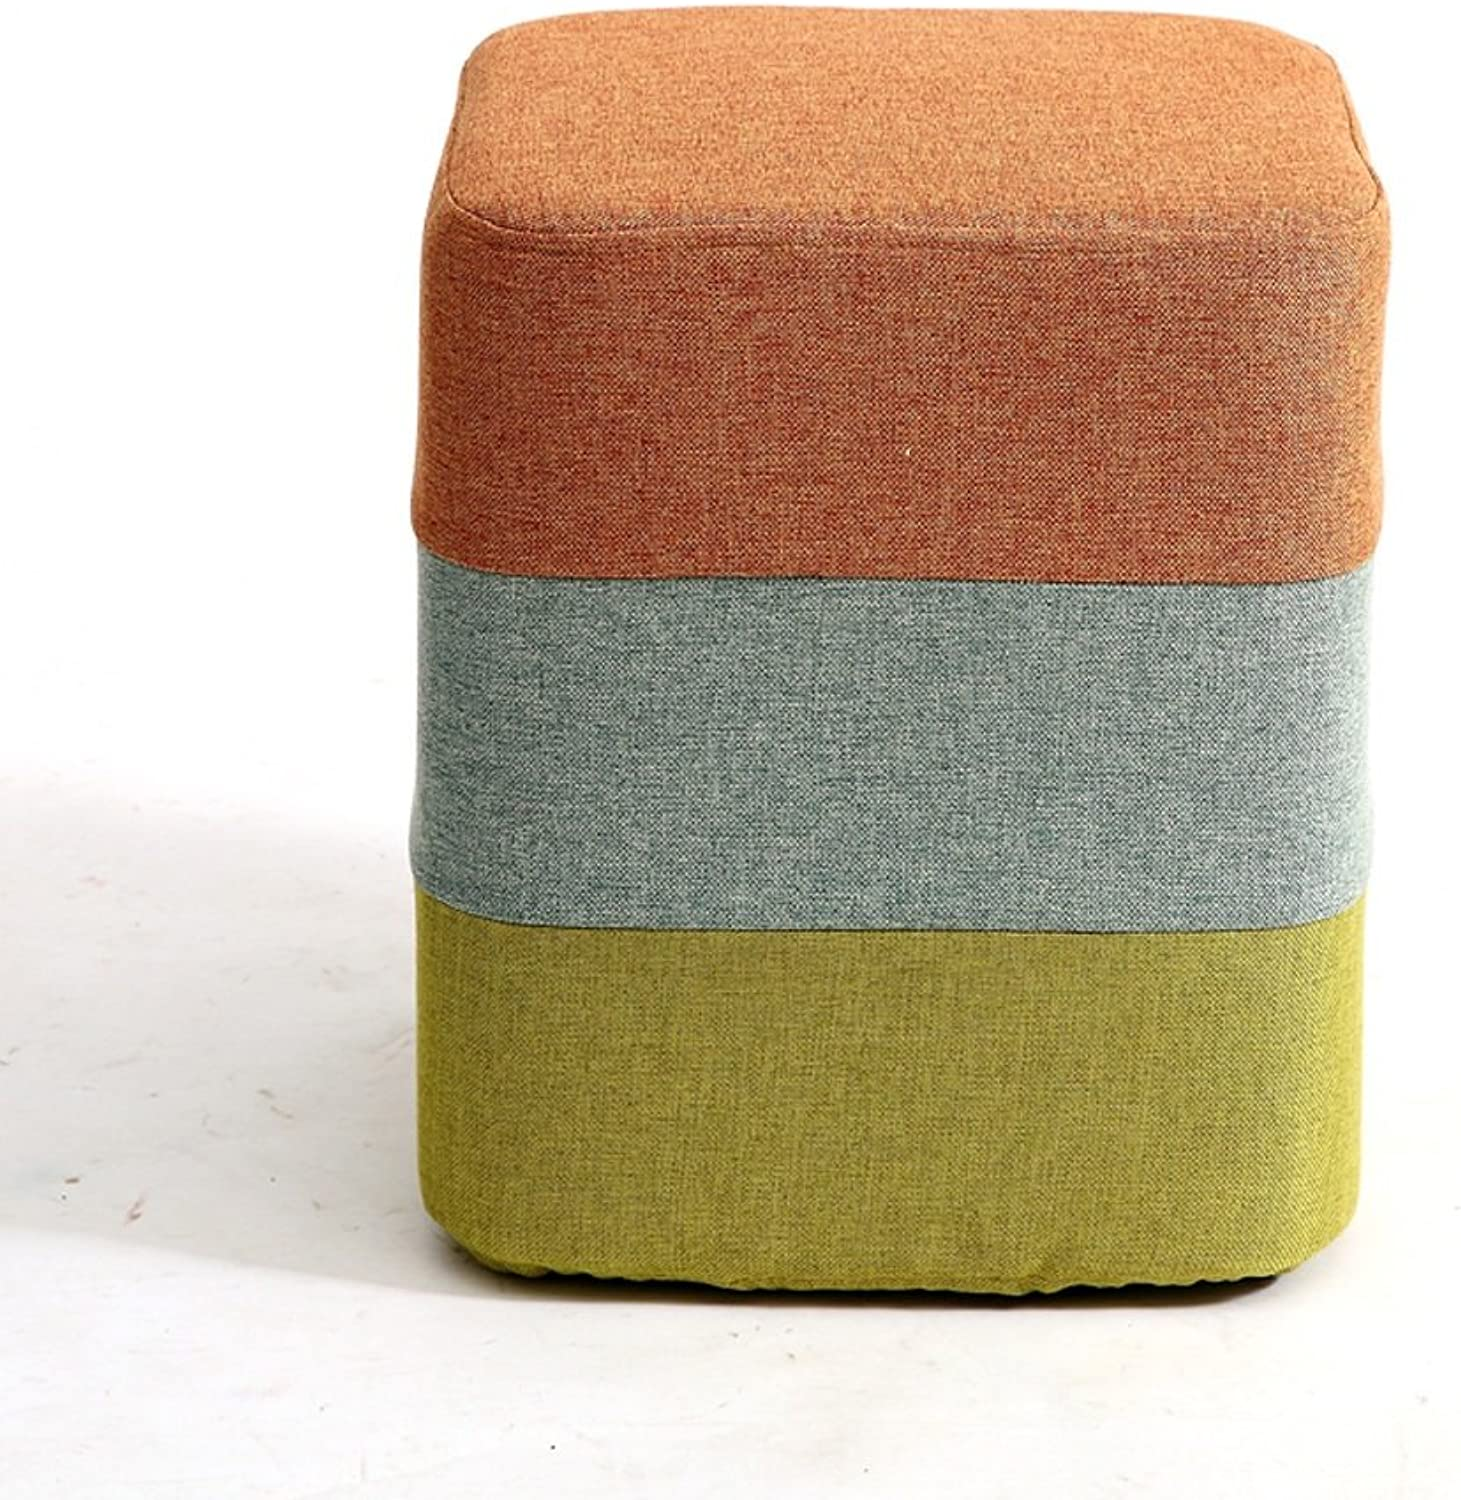 Creative Rainbow Fabric Round Stool, Modern Minimalist Style Study Room Living Room Bedroom Stool, shoes Bench, Sofa Stool, Make-up Bed End Stool, Footstool, 29  35cm